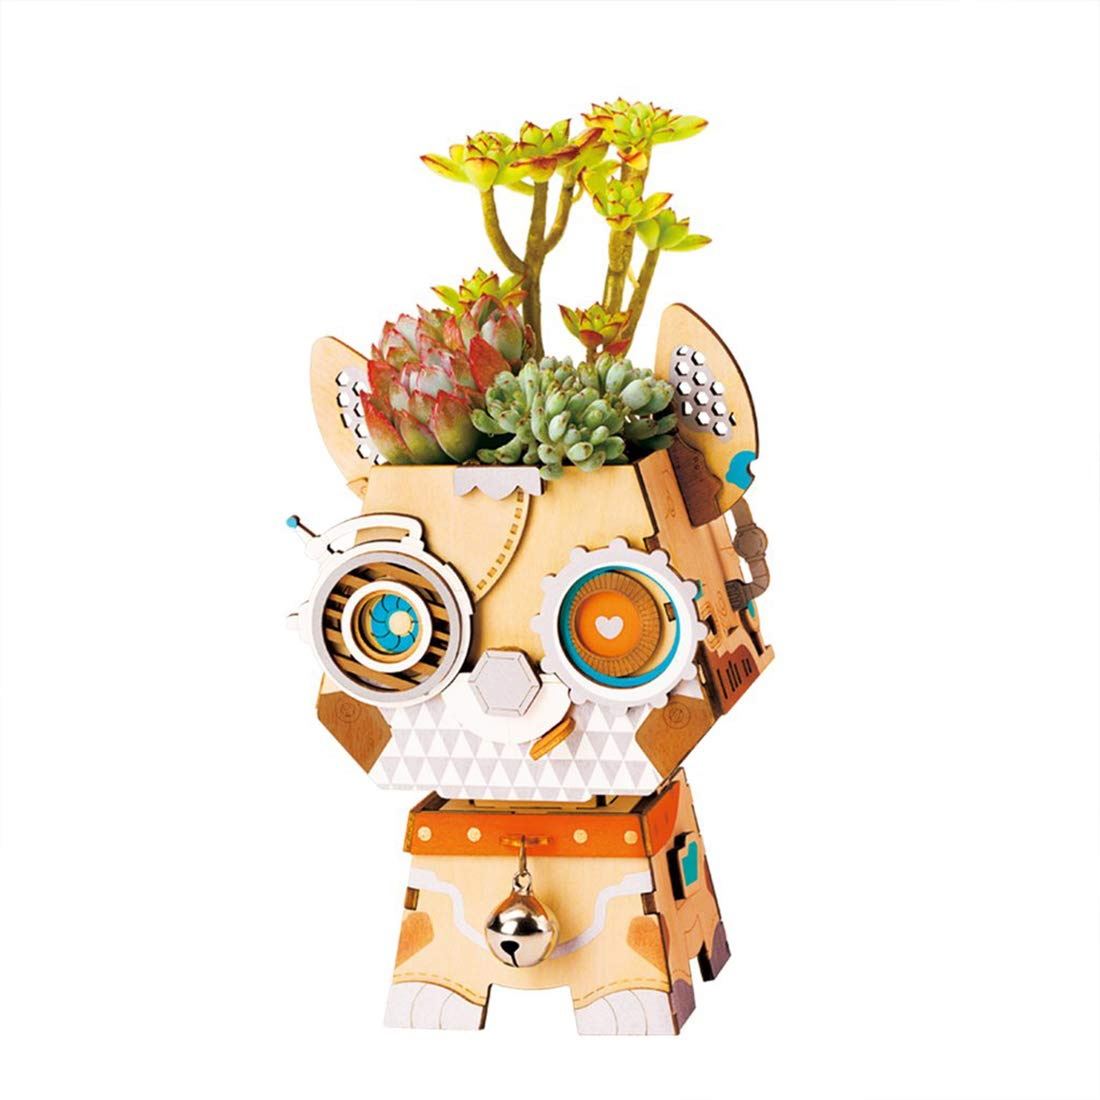 3D Wooden Puzzle Flower Pot DIY Cartoon Green Plant with Hole Flower Pot Office Decoration Birthday Children and Adults 4.25In4.17In6.54In (Pot Puppy)